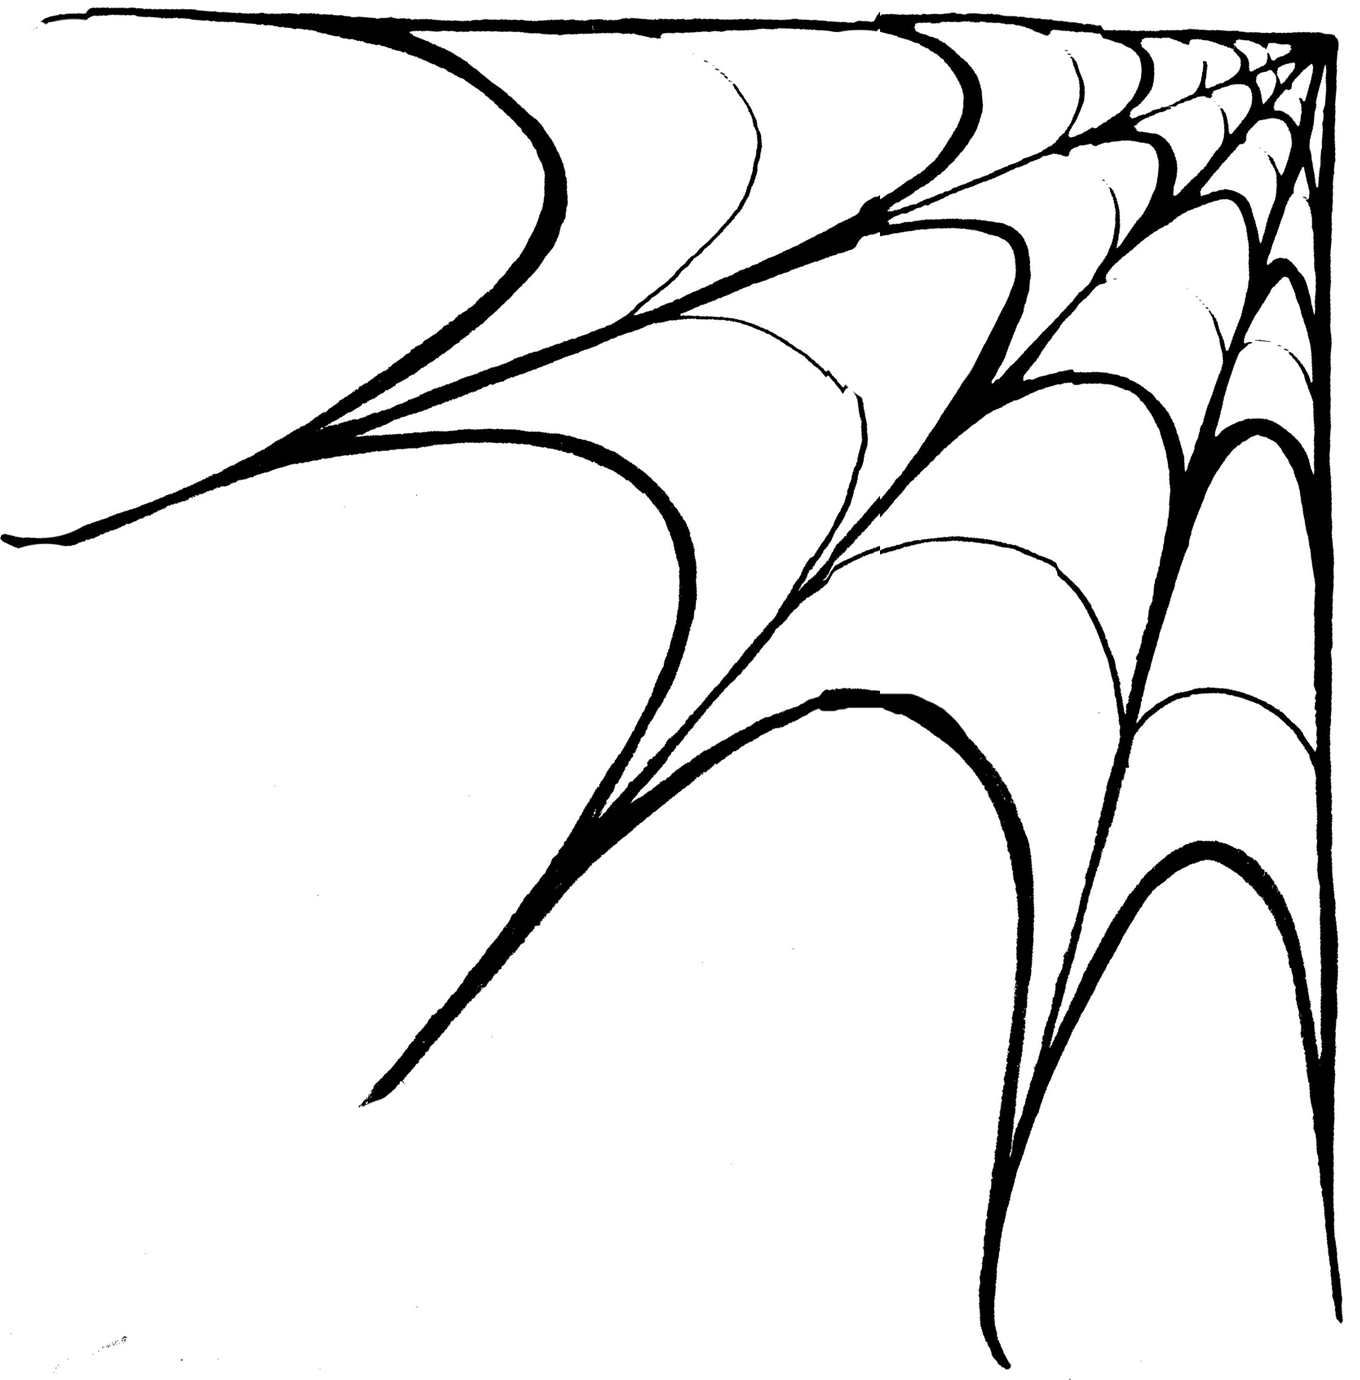 1360x1380 Good Spider Coloring Page Look Real For Kids Animals Pages Web